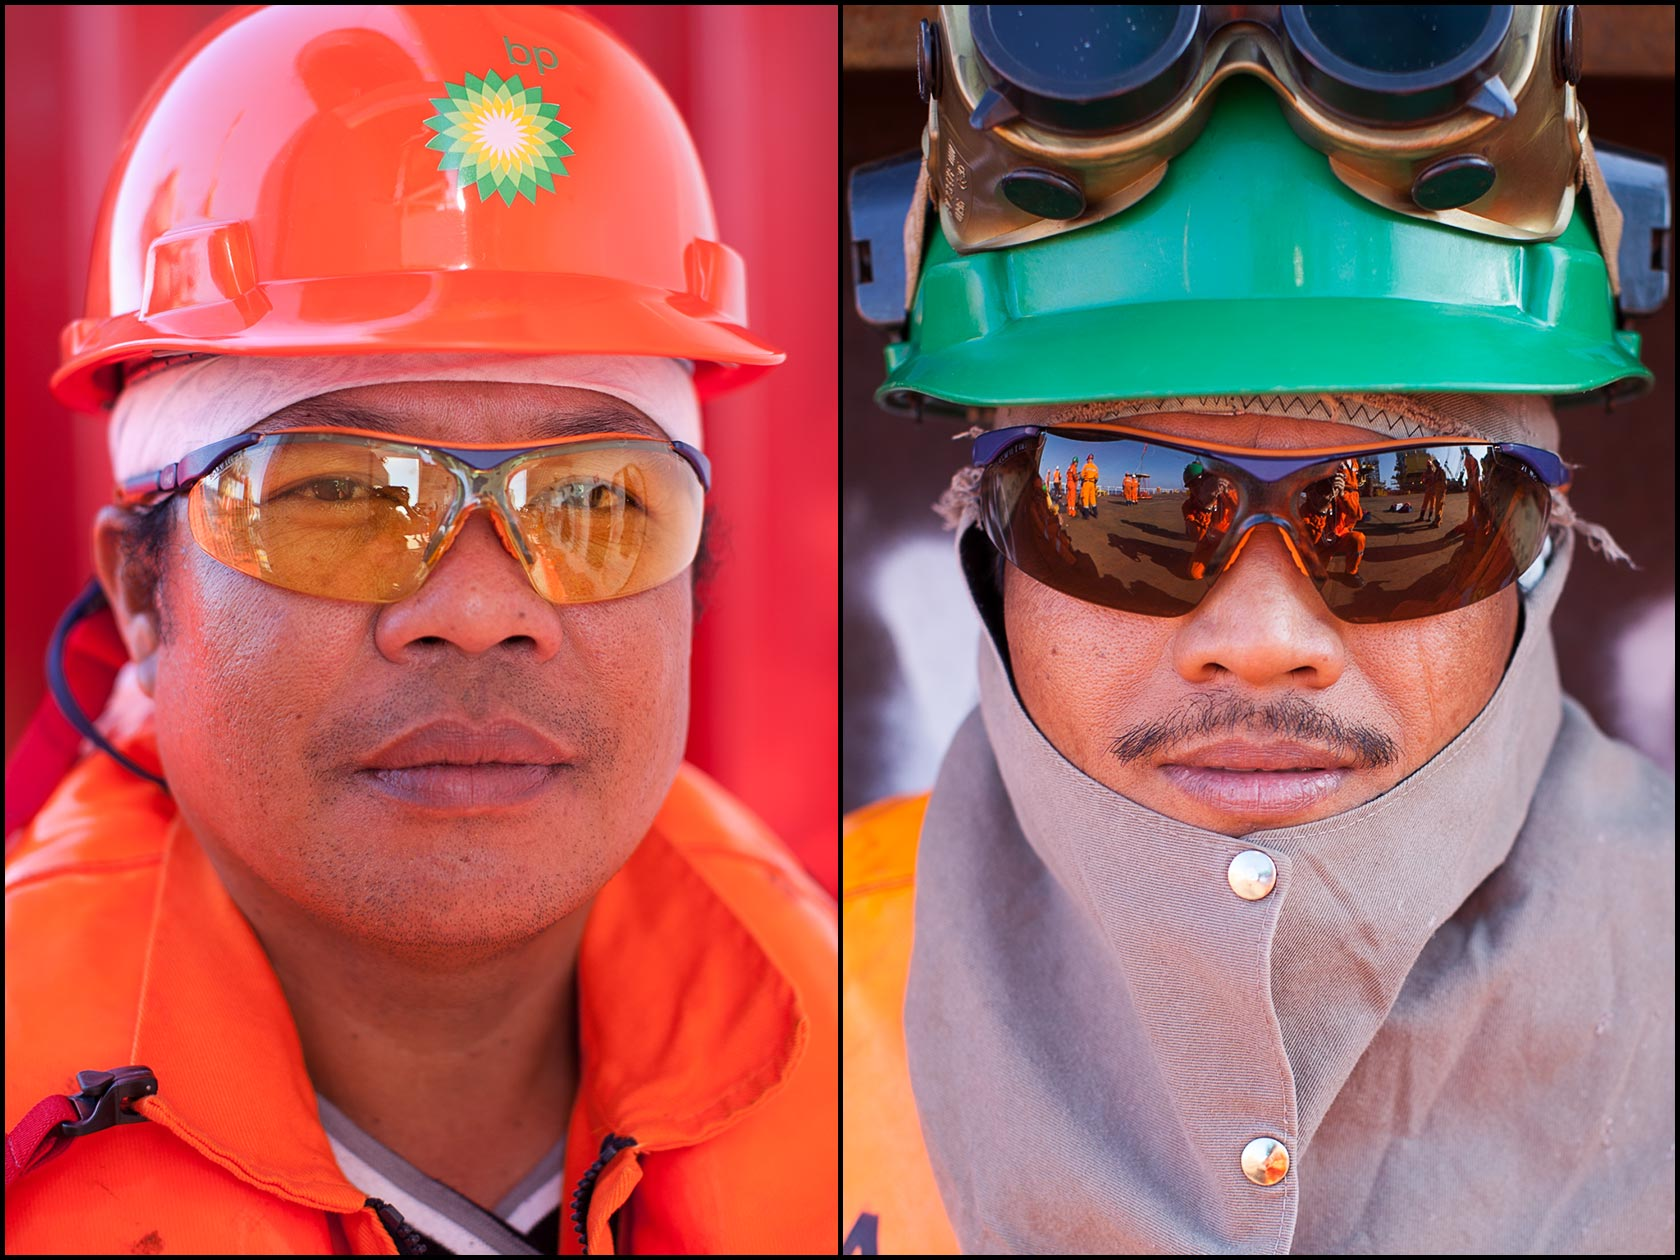 Asian offshore construction ship workers portraits. Deck worker in orange life preserver and hard hat (L), Welder in personal protective gear (R).